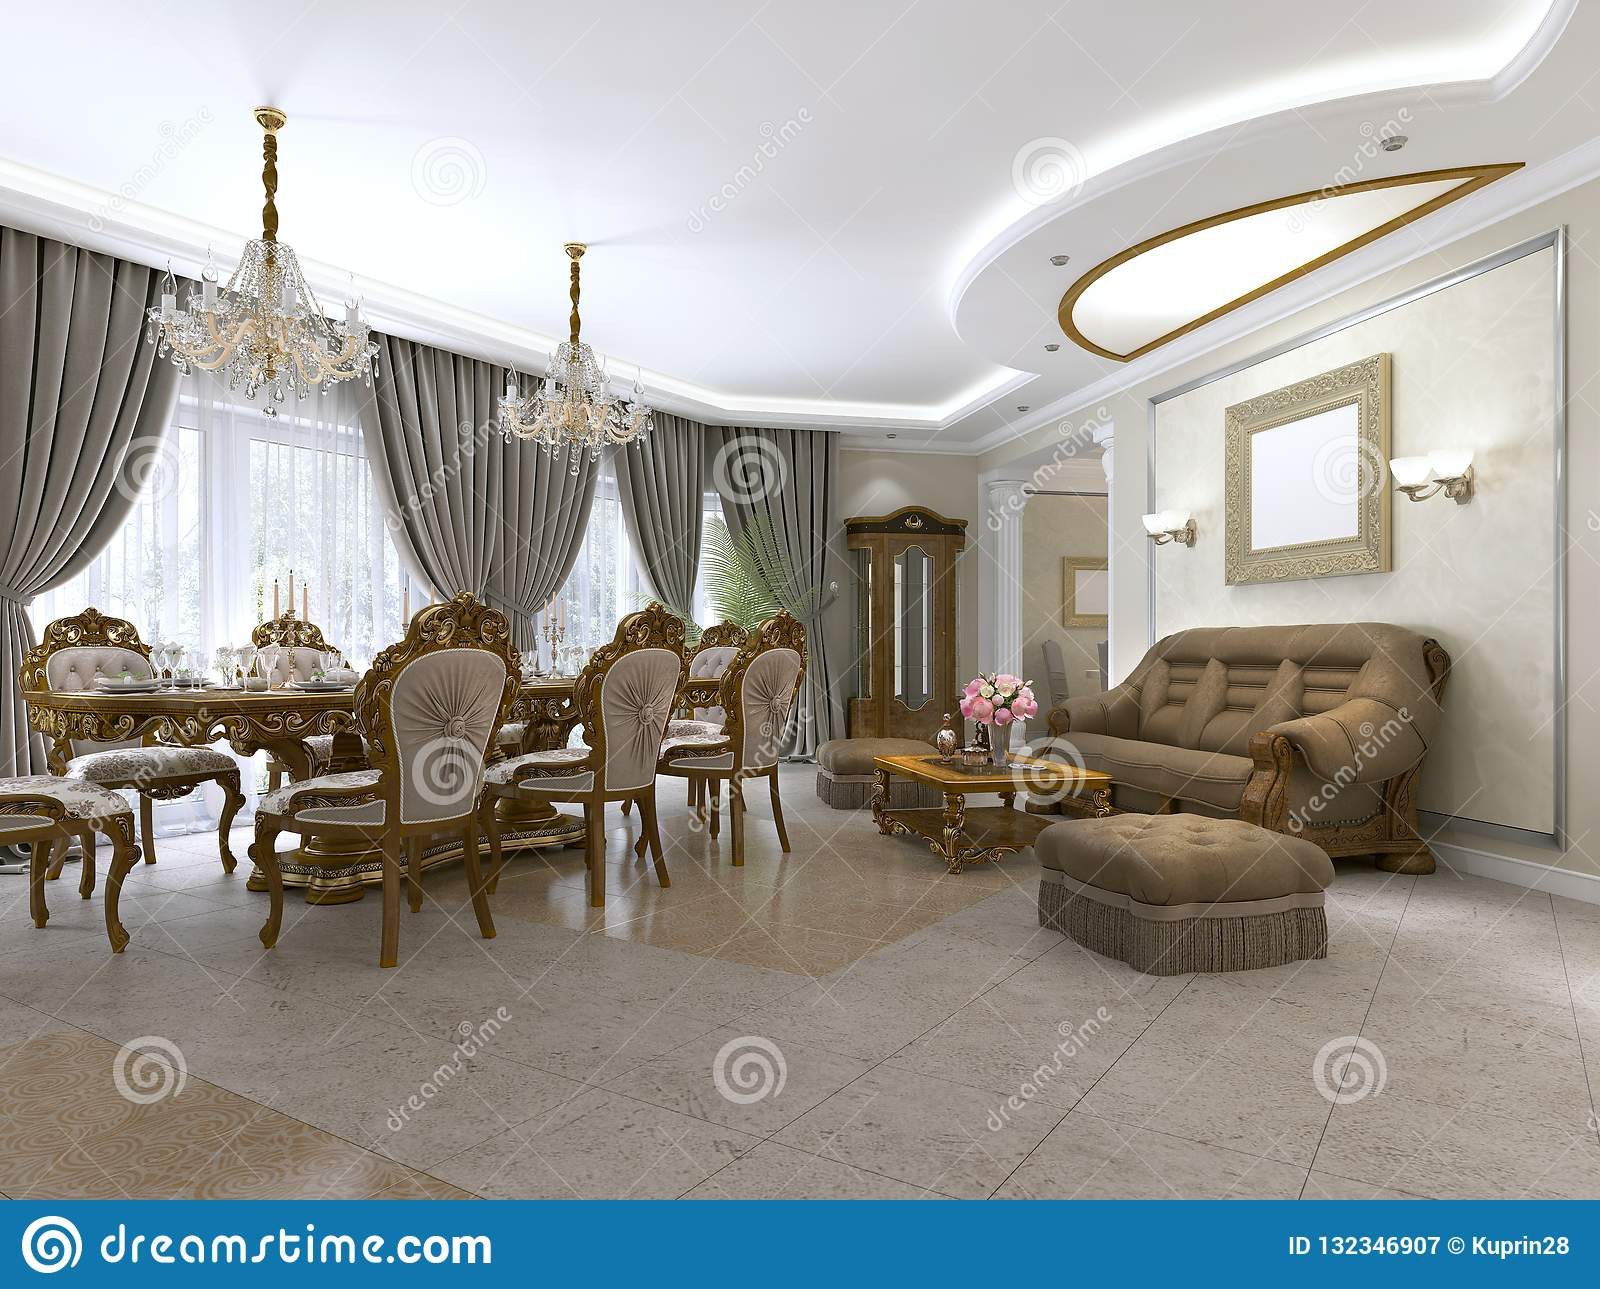 A Modern Classic Living Room In An Art Deco Style With A ...